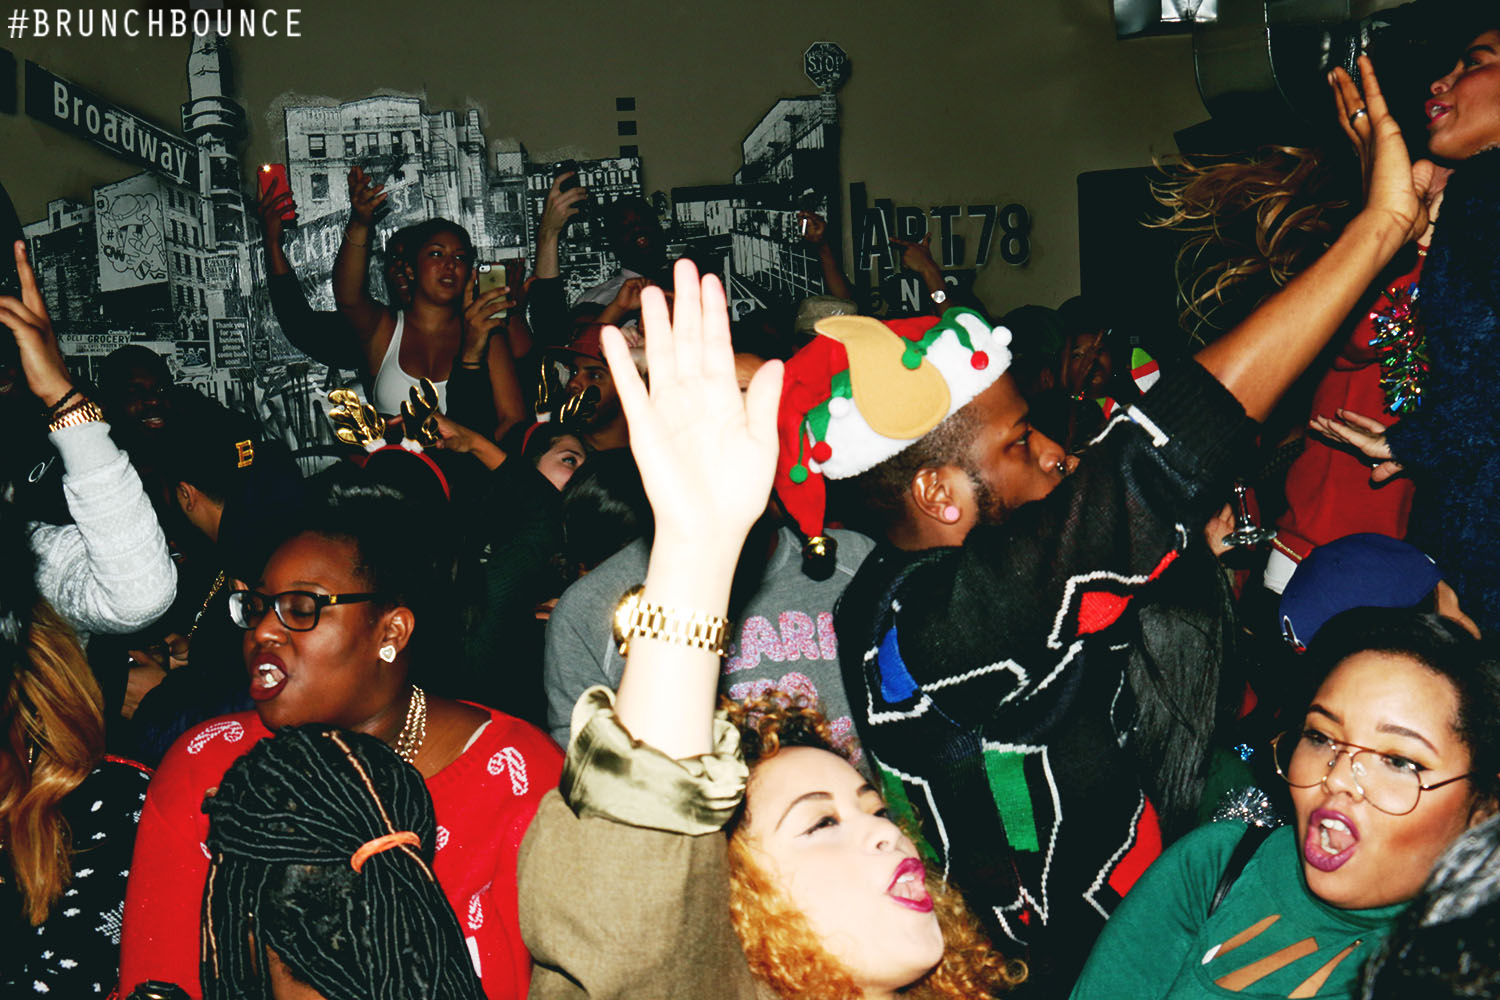 brunchbounce-ugly-christmas-sweater-party-122014_15896962327_o.jpg